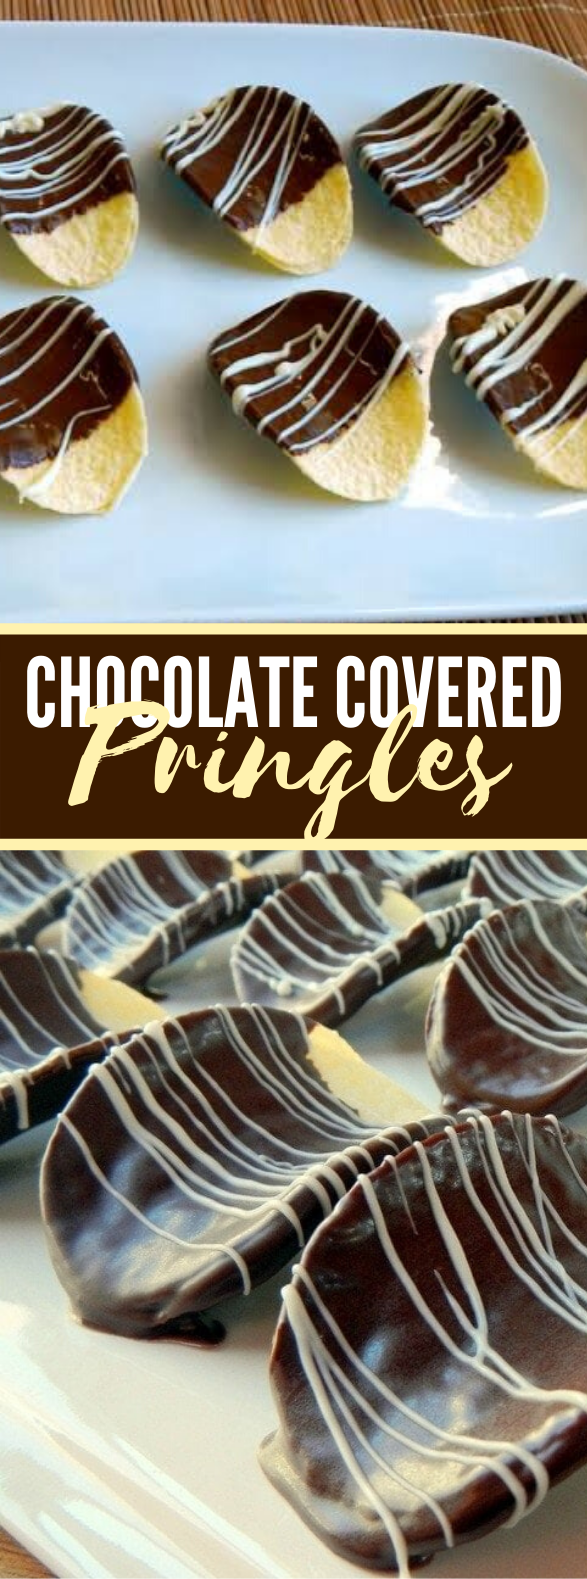 Chocolate Covered Pringles #desserts #thanksgiving